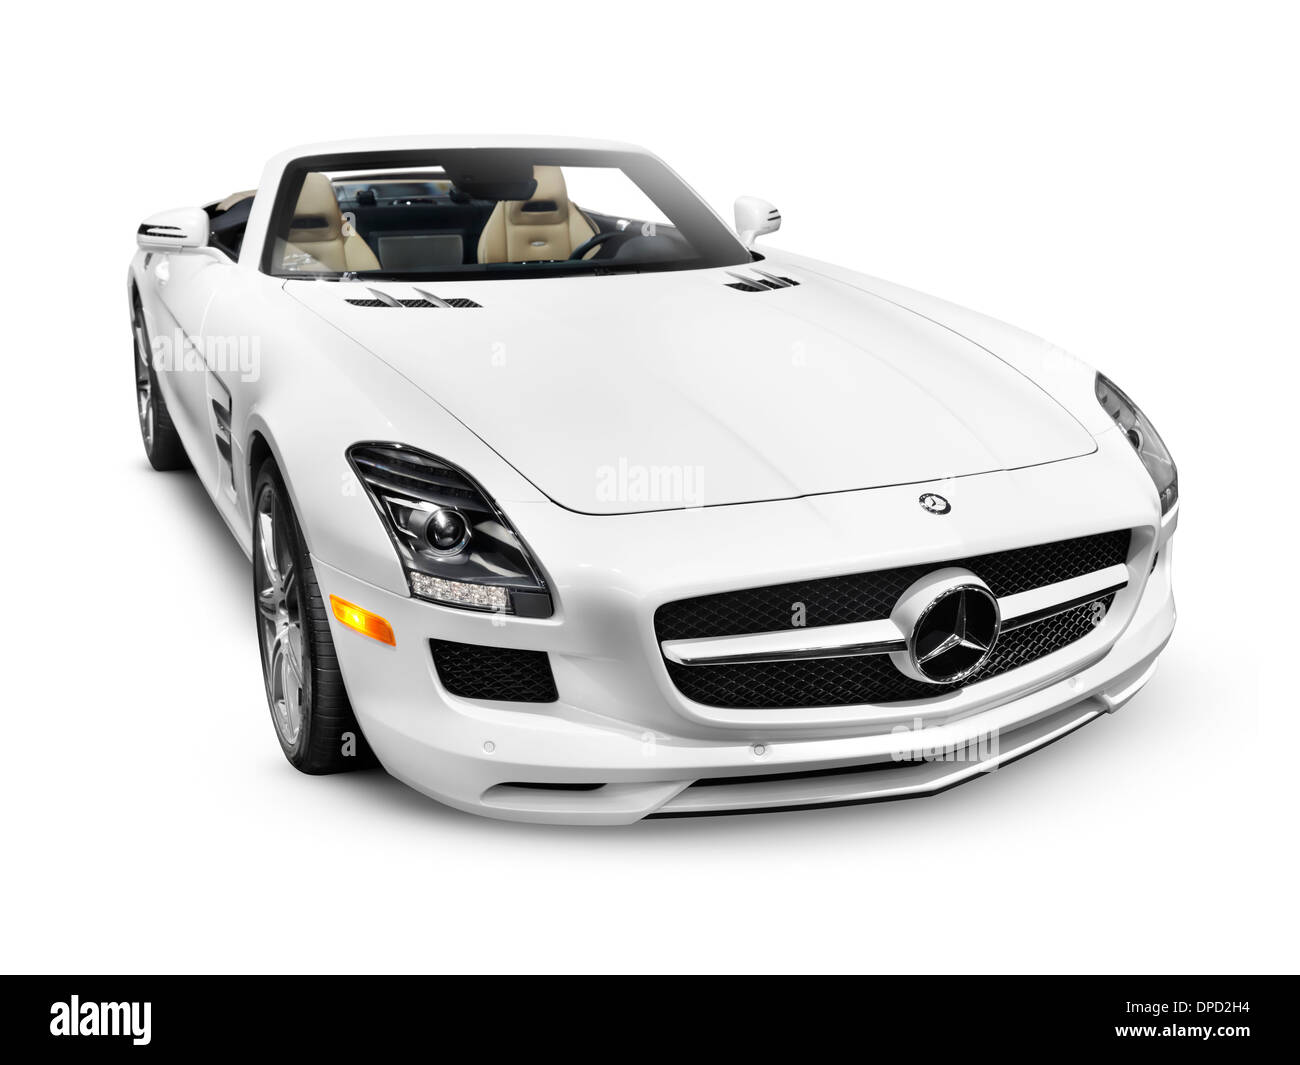 2012 Mercedes Benz Sls Amg Gt Roadster Sports Car Isolated